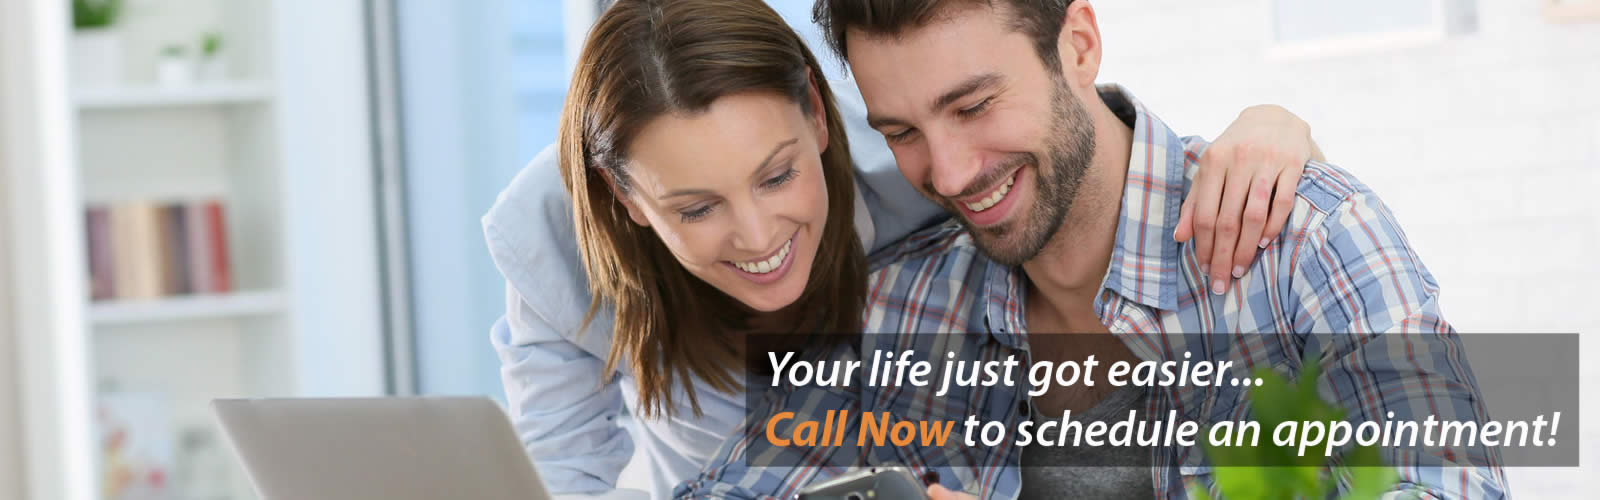 Window Gang | Your Life Just Got Easier... Call Now to Schedule an Appointment